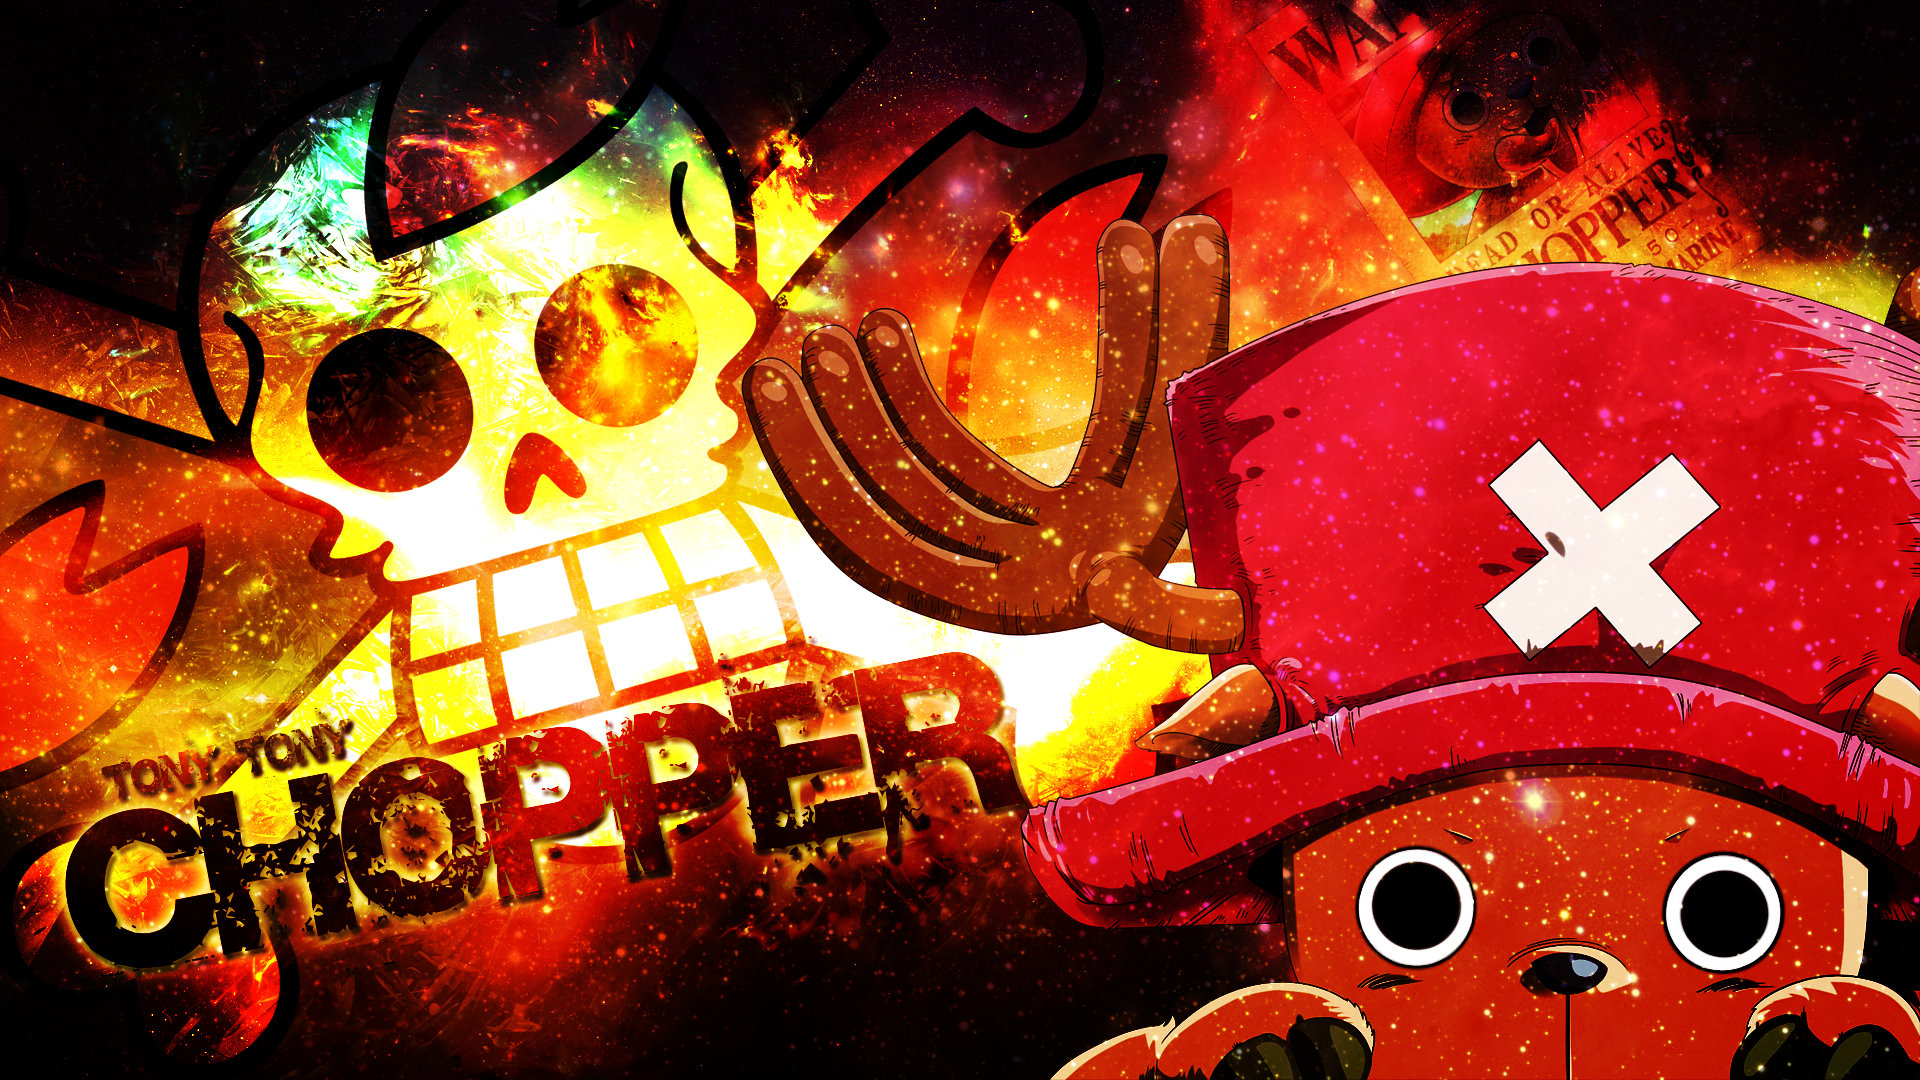 Download full hd 1920x1080 Tony Tony Chopper PC wallpaper ID:314854 for free